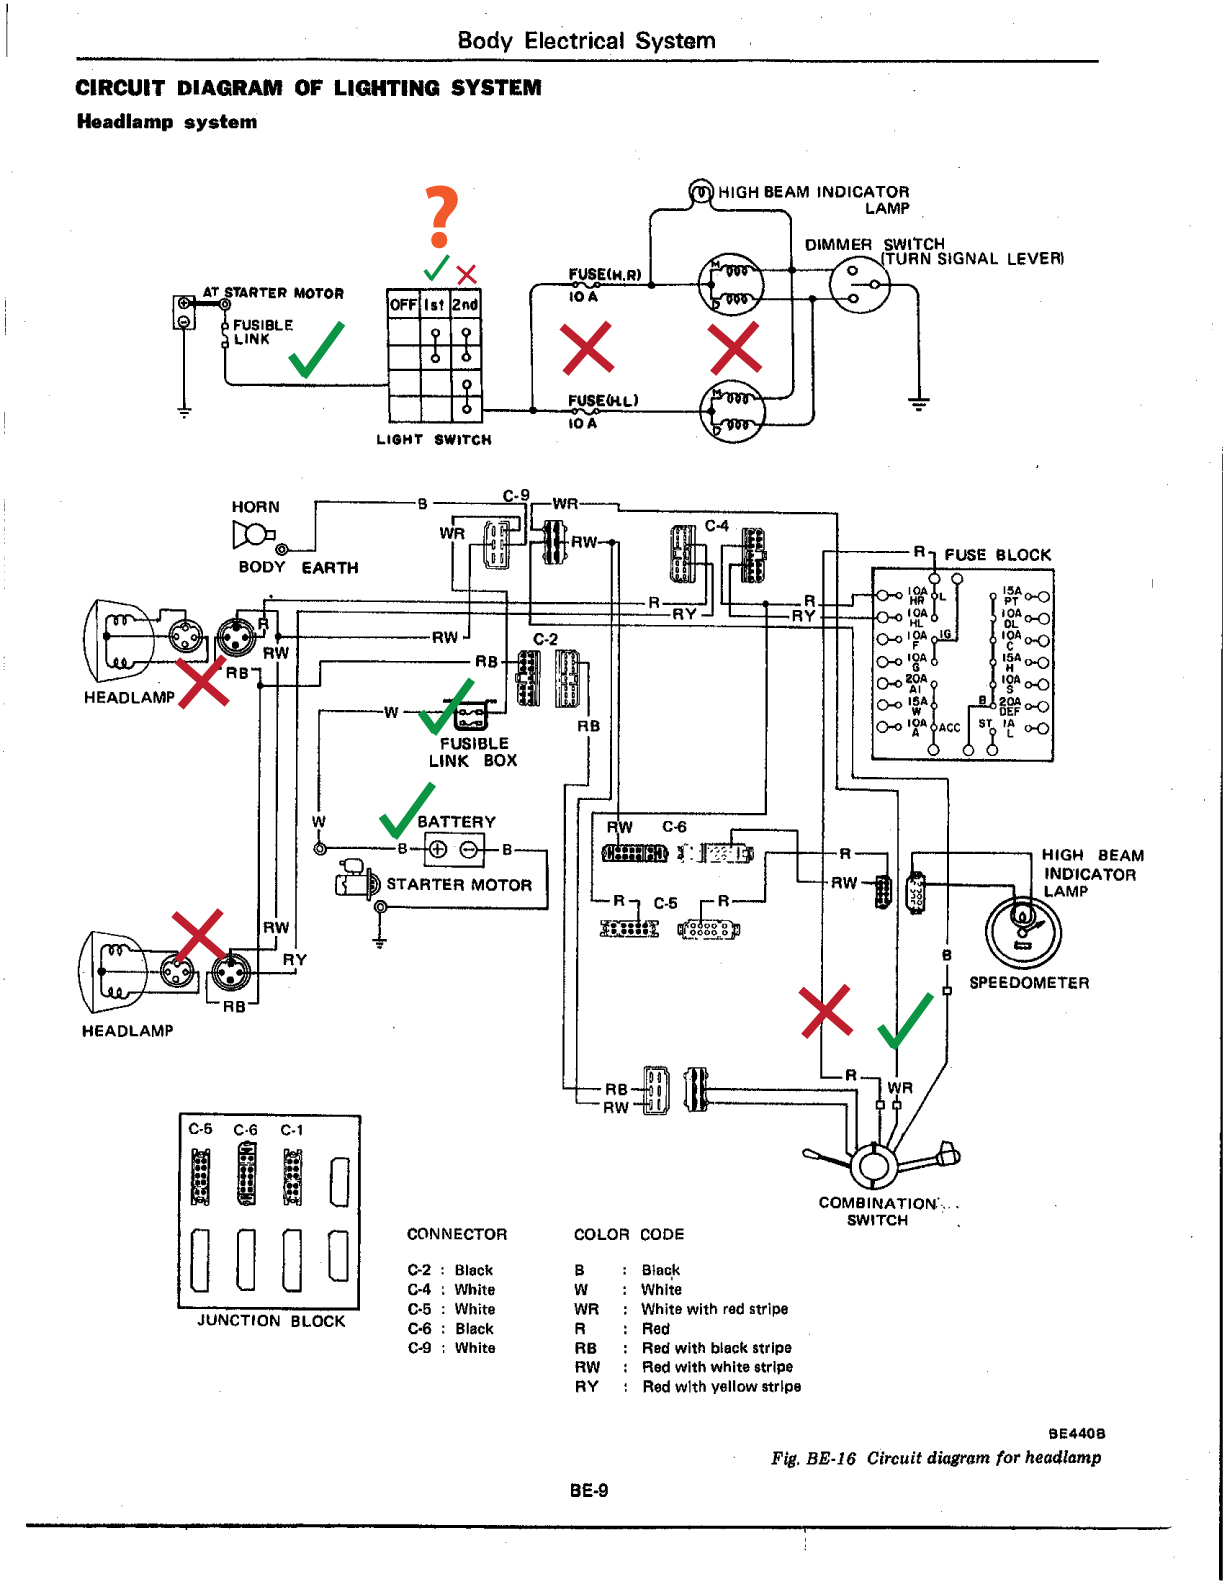 daily datsun 280z fsm be 9 goodbad 280z wiring diagram 280z tachometer wiring \u2022 wiring diagrams j 280z headlight wiring diagram at creativeand.co